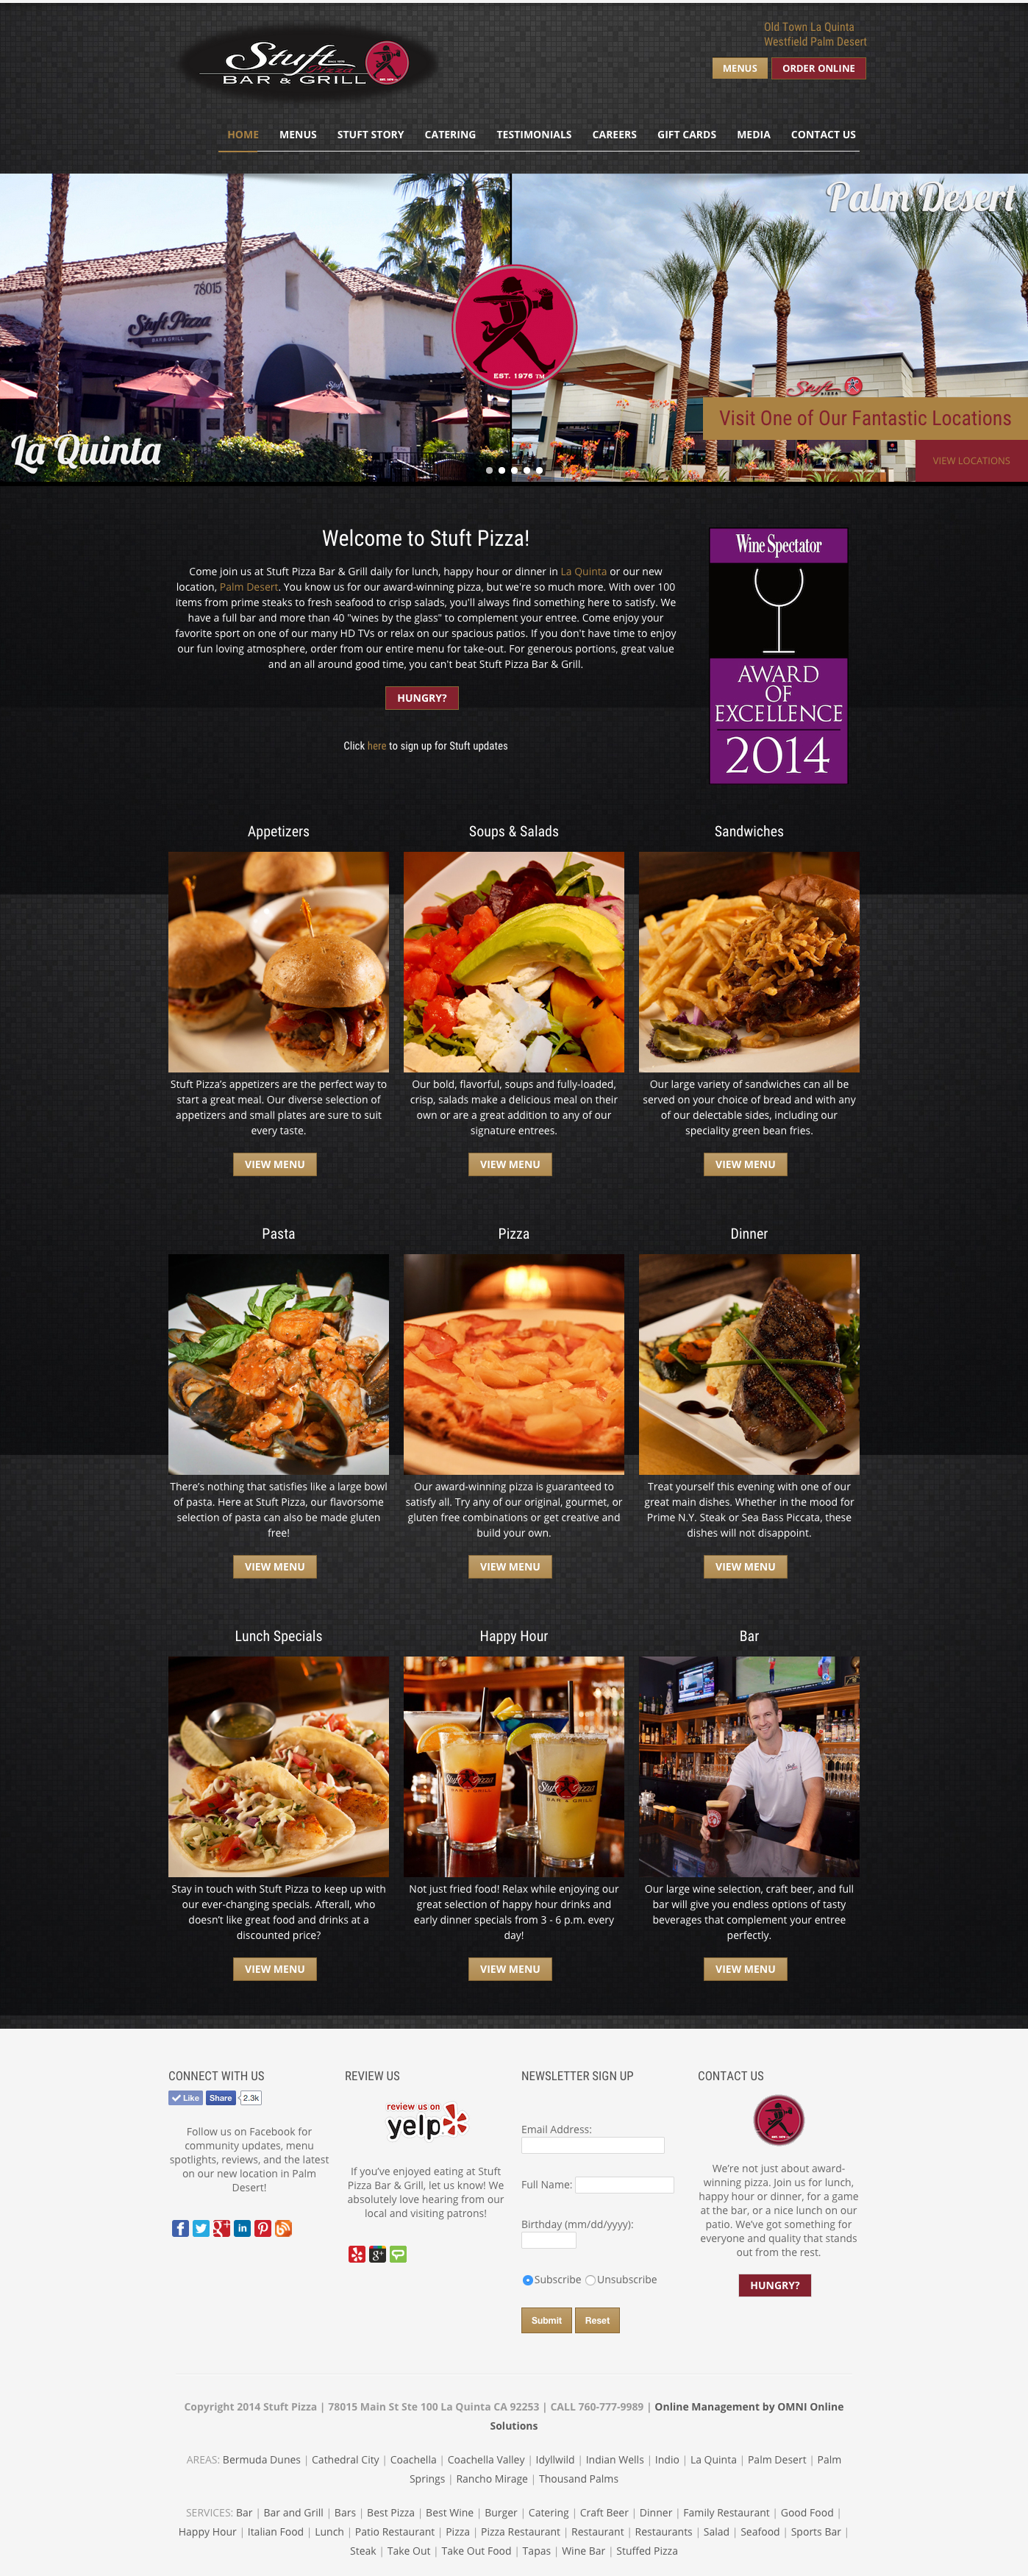 Web Design For The Restaurant Stuft Pizza Bar And Grill Driving Customers To Locations In Palm Desert La Quinta Palm Desert Pizza Bar Showcase Design